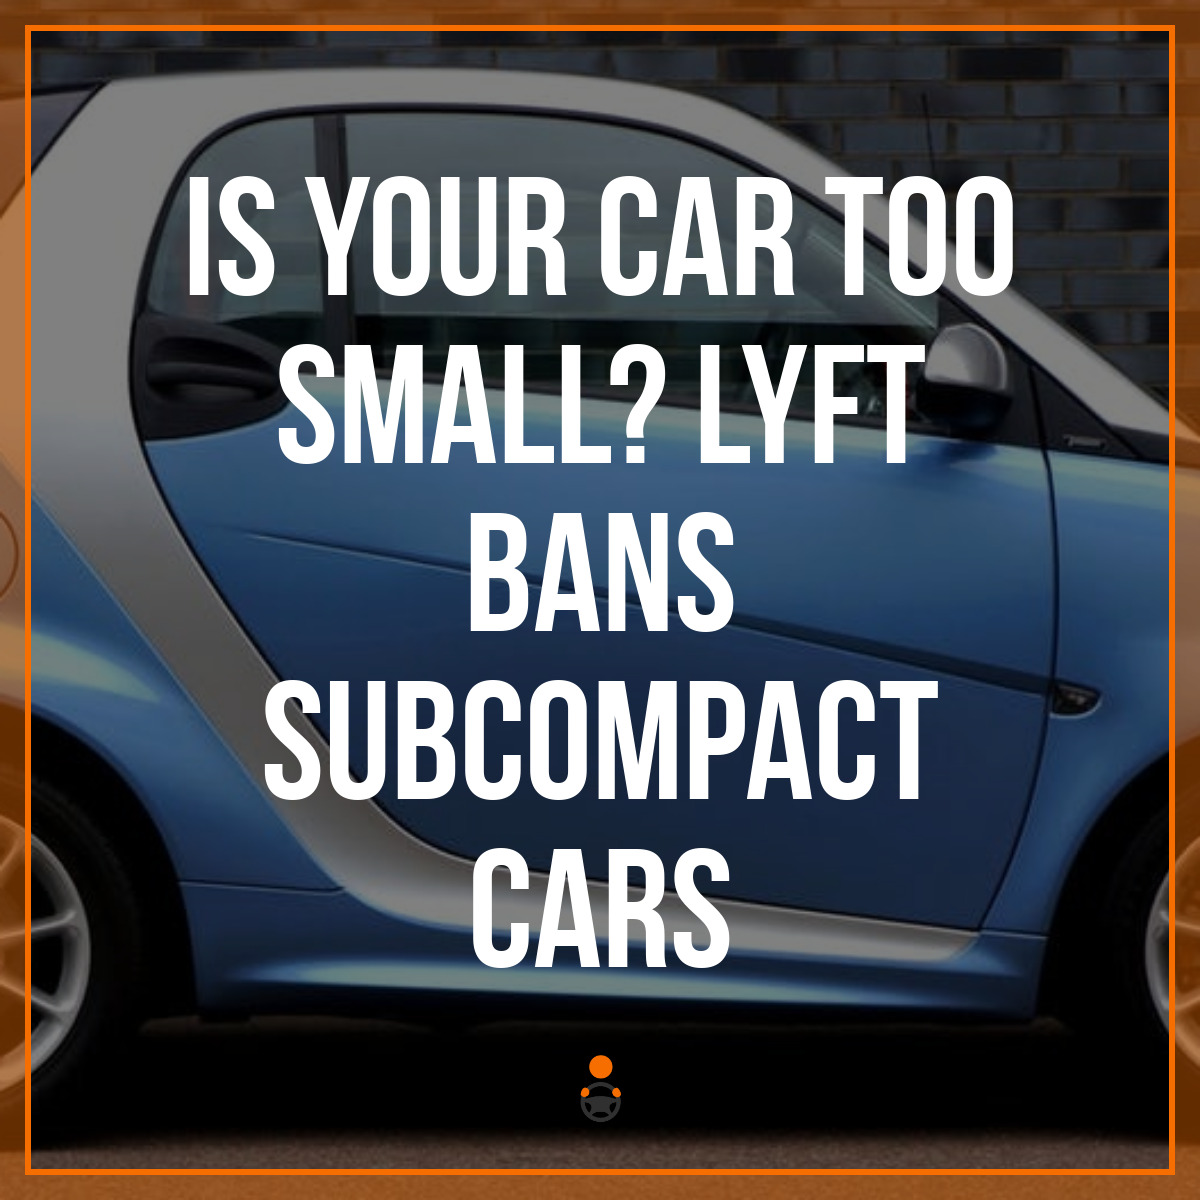 Is Your Car Too Small? Lyft Bans Subcompact Cars